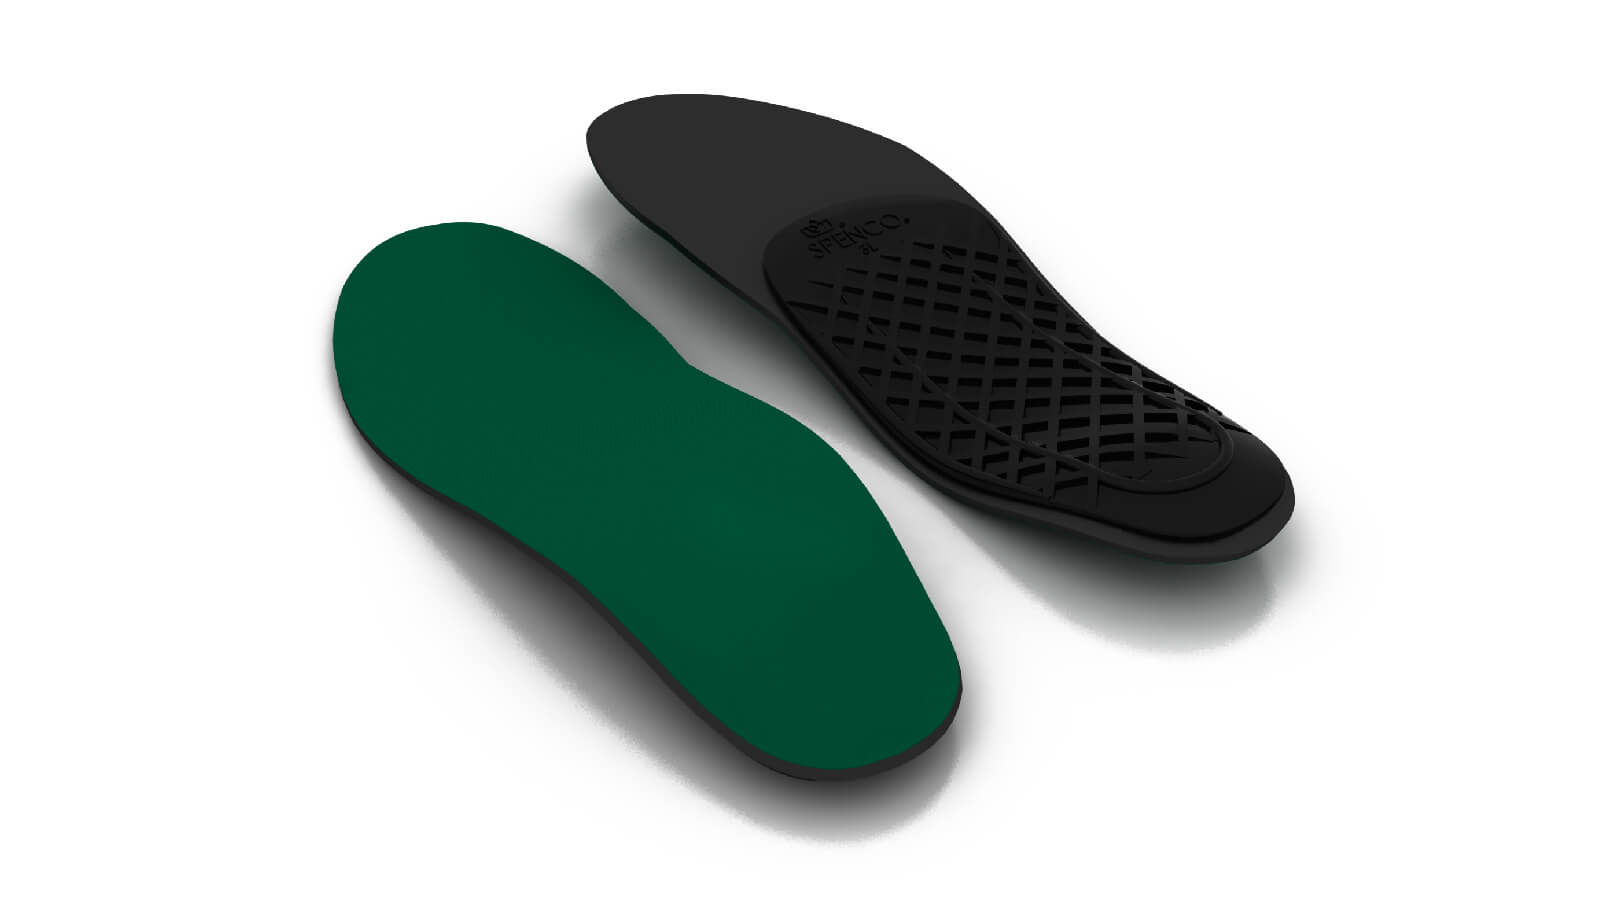 Top and bottom view of the Spenco rx orthotic arch support insoles